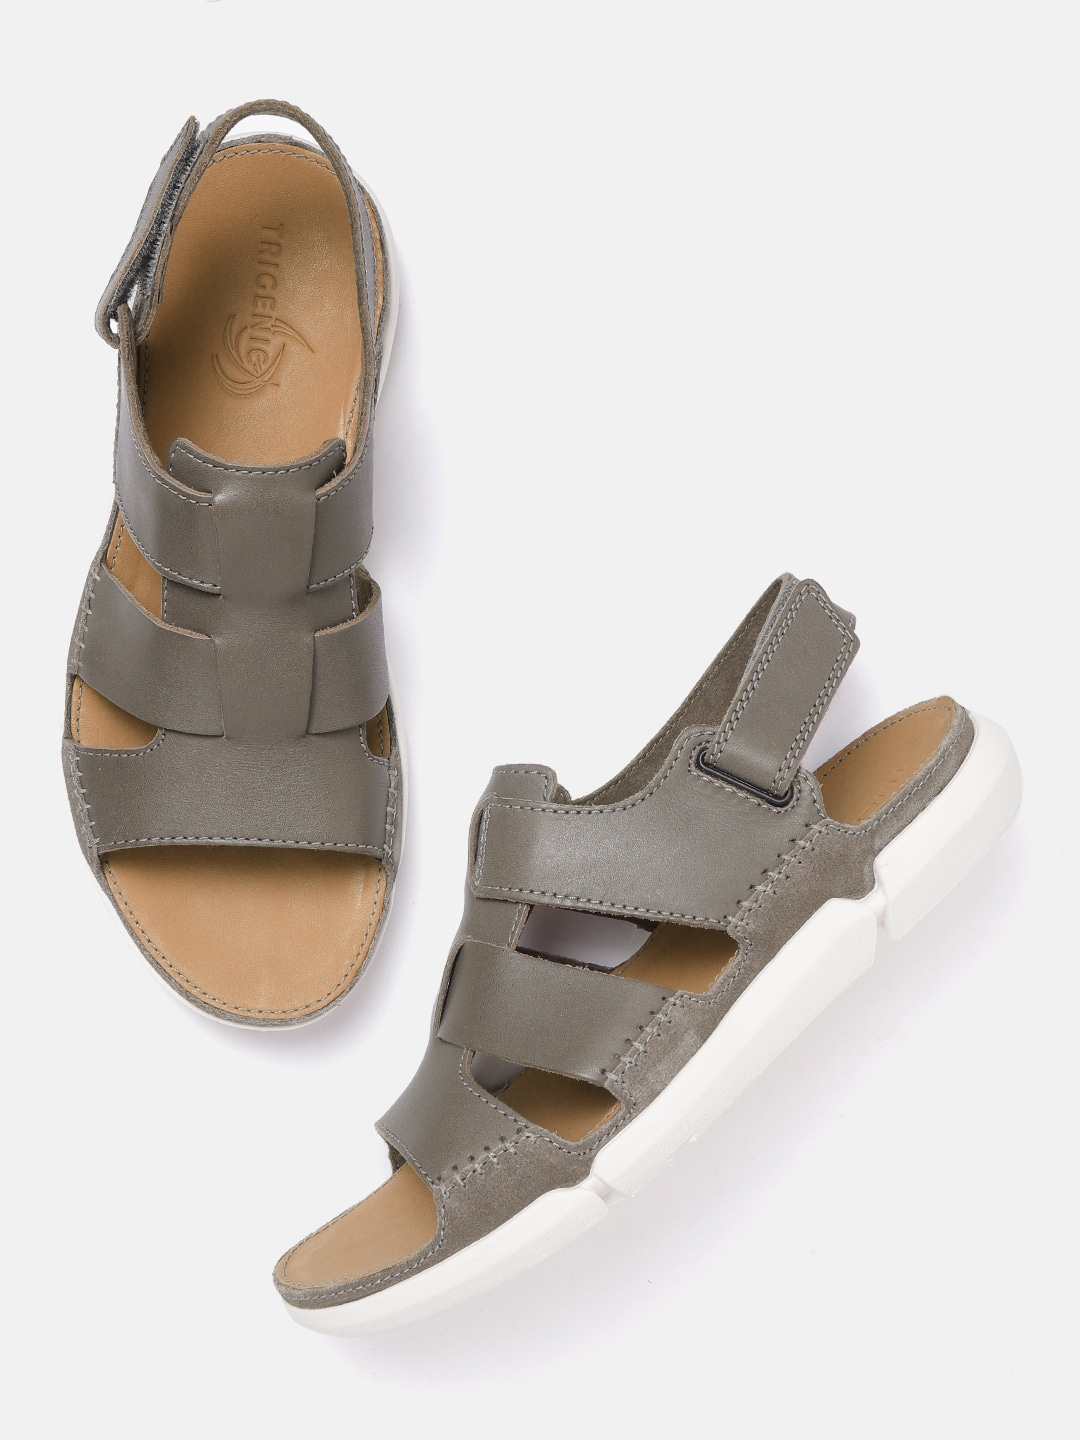 Olive Green Solid Leather Fisherman Sandals